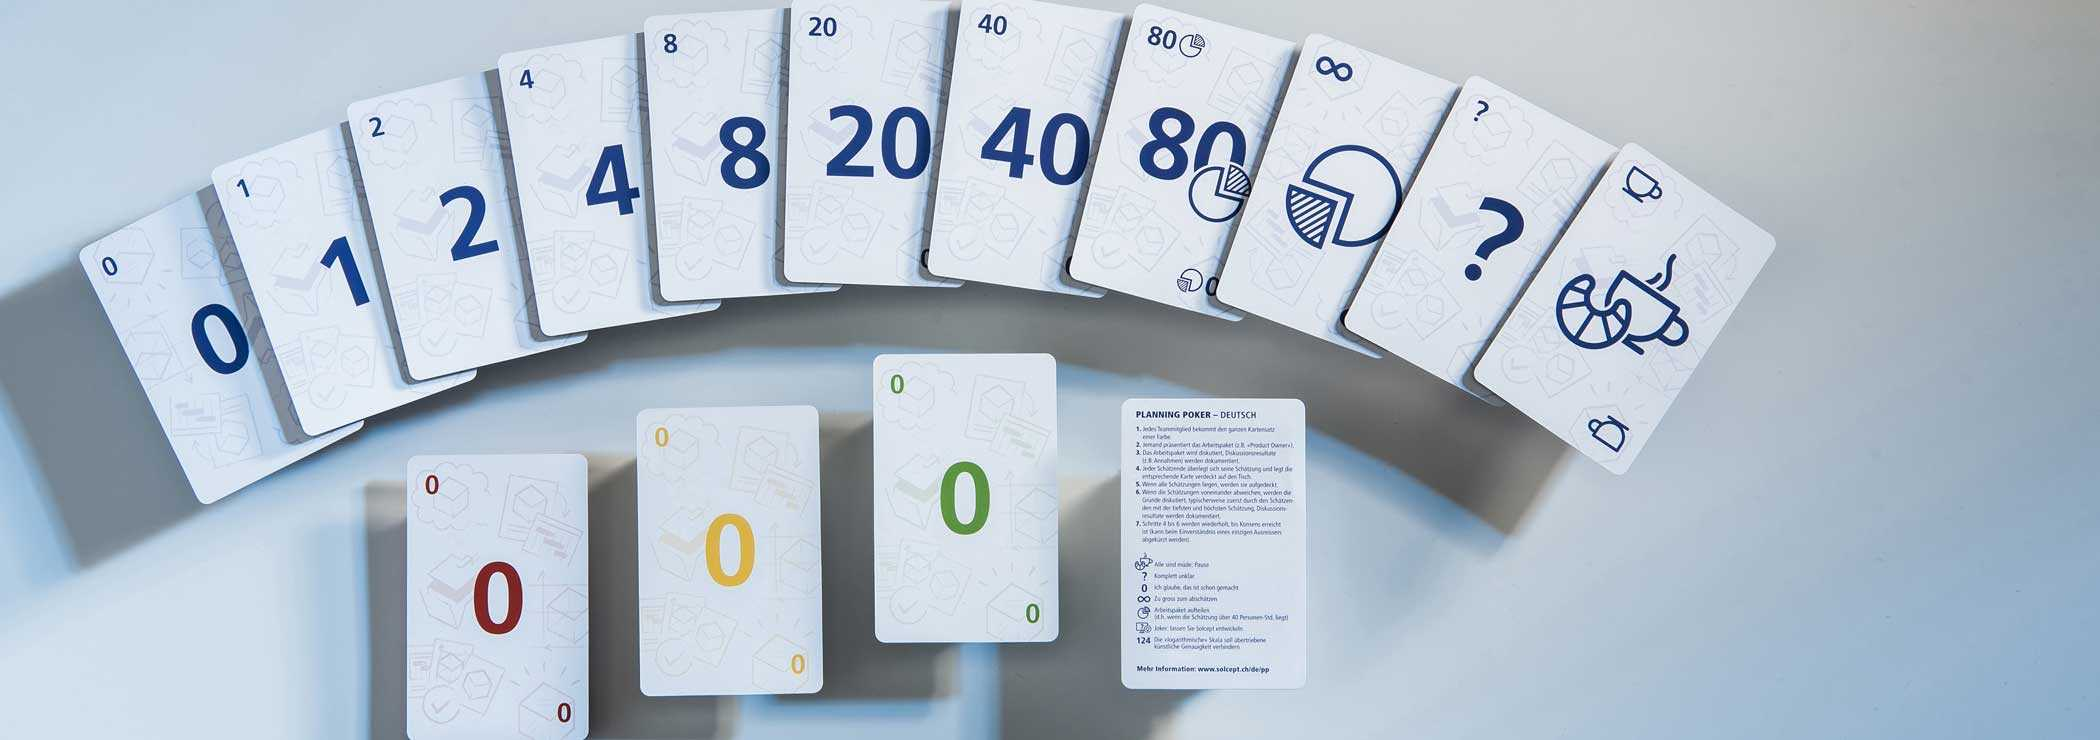 Instructions For Planning Poker Regarding Planning Poker Cards Template